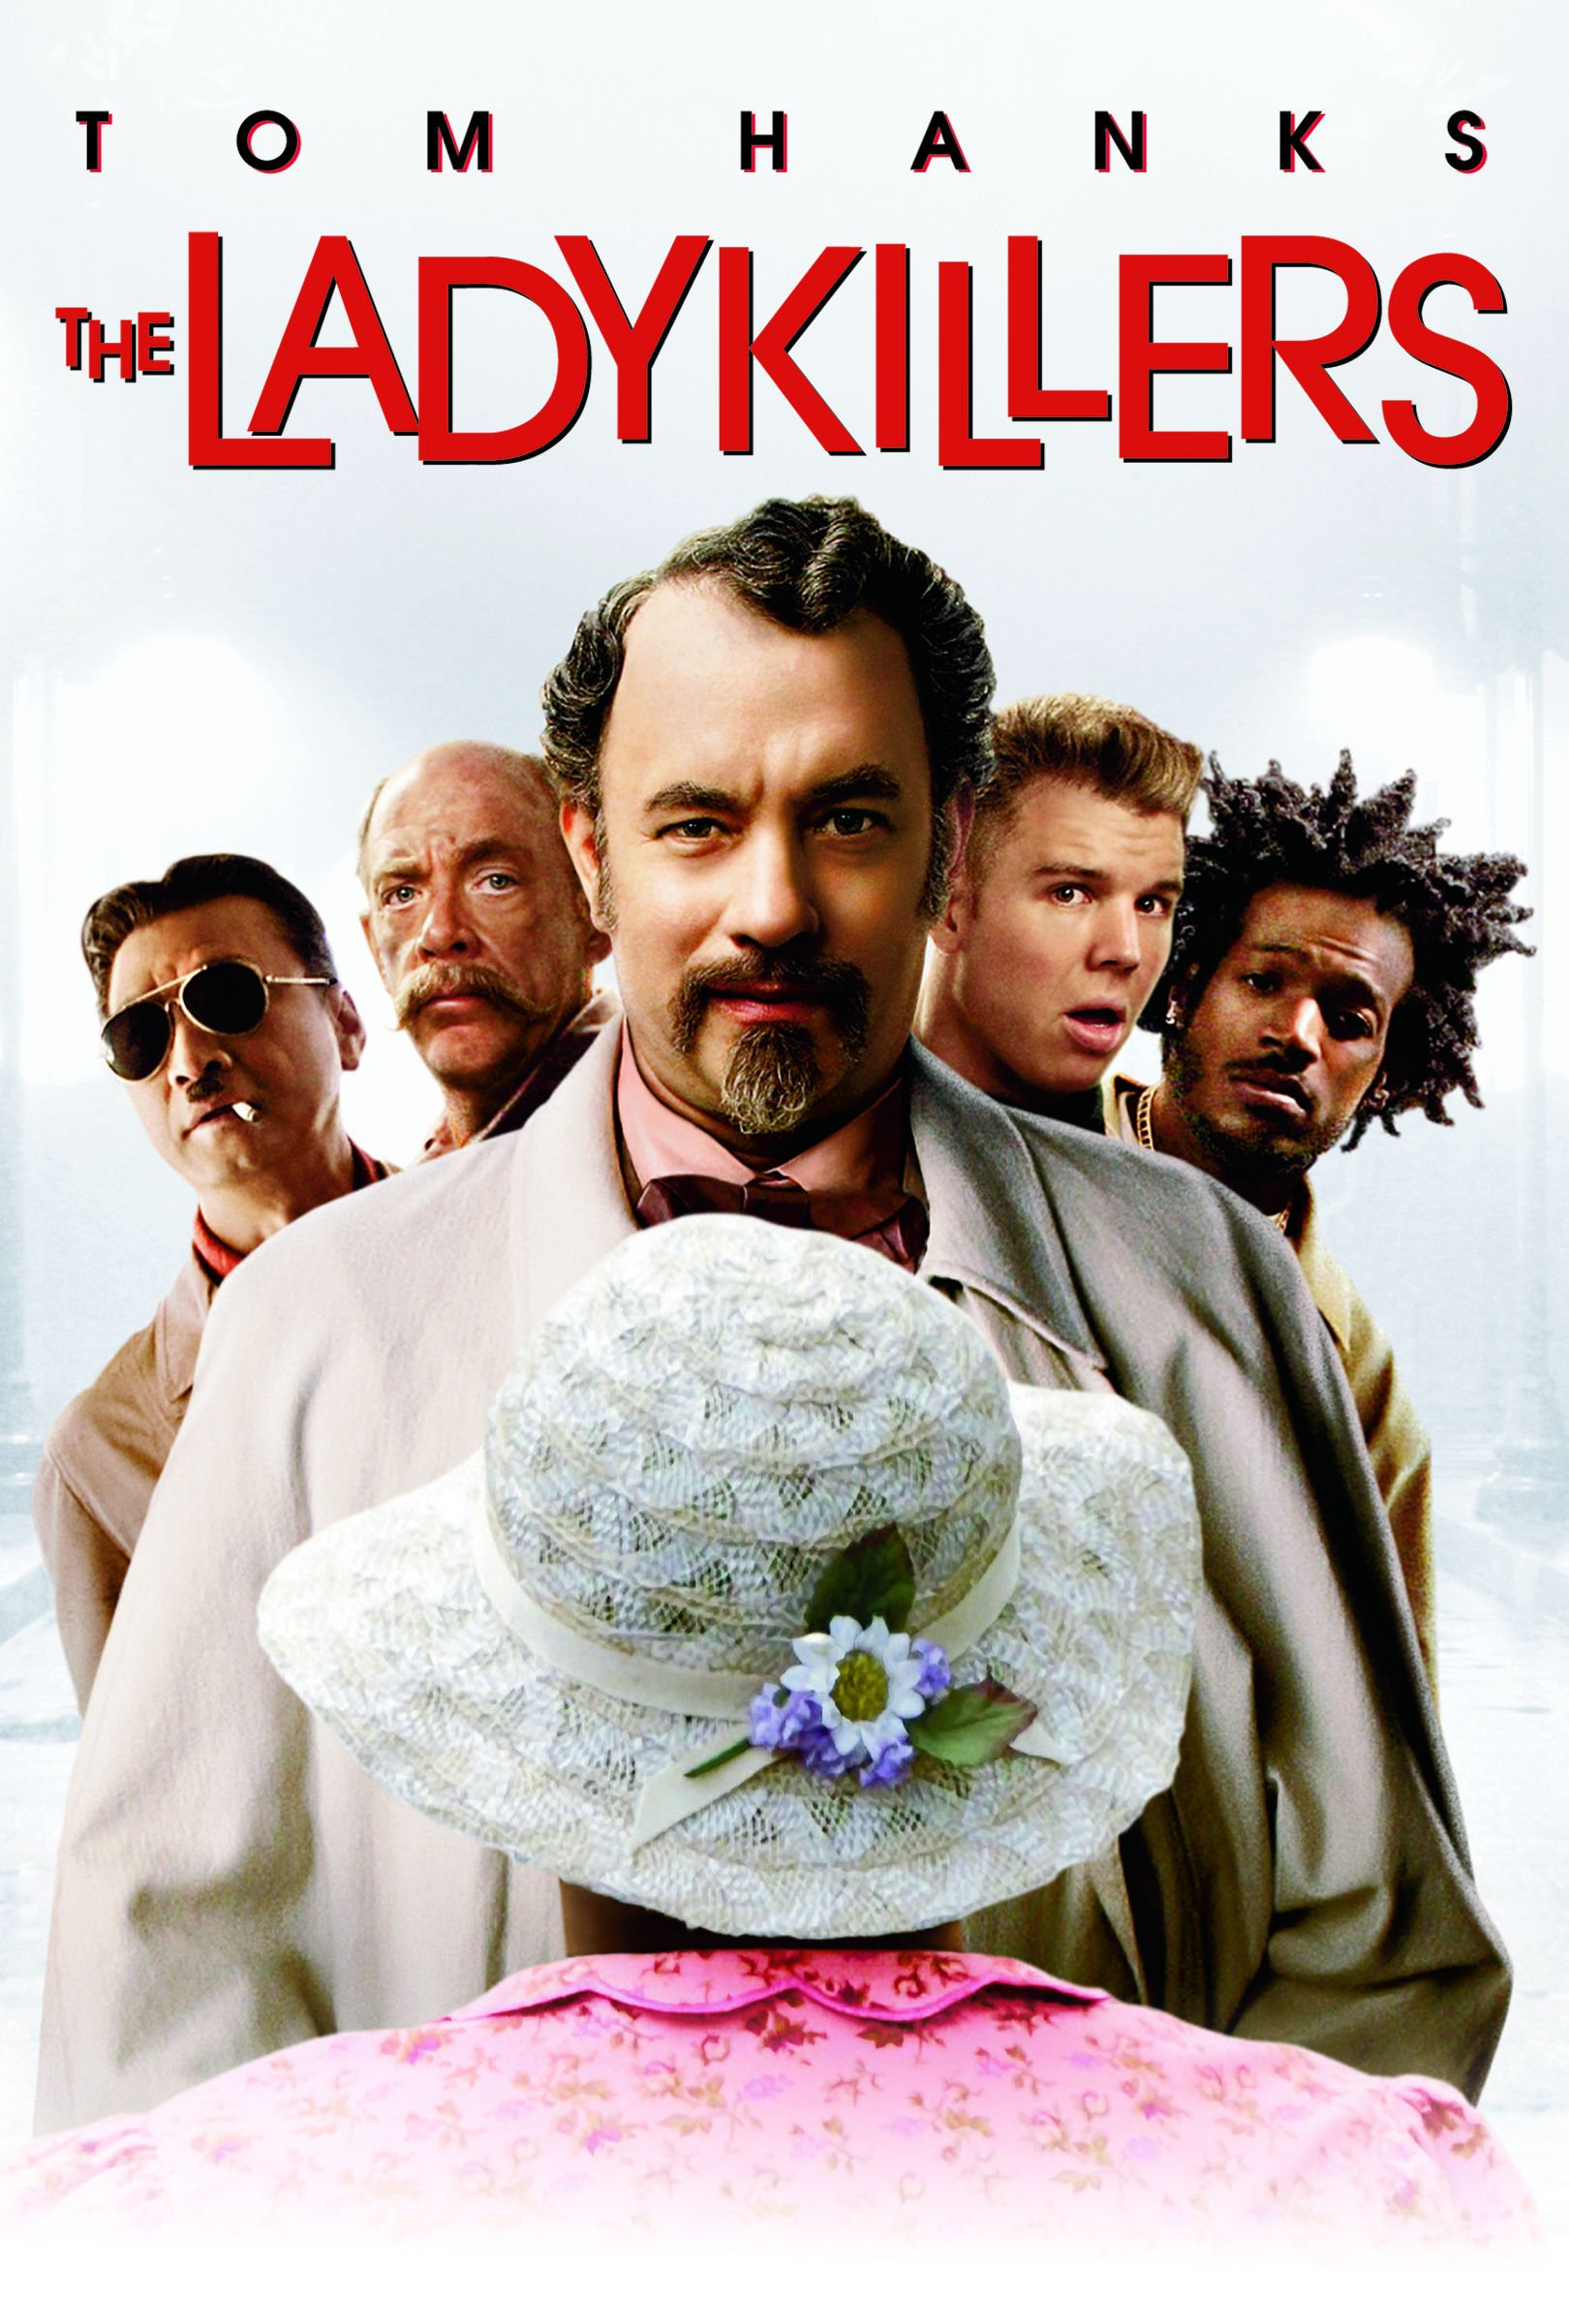 the-ladykillers-filming-locations-dvd-itunes-poster